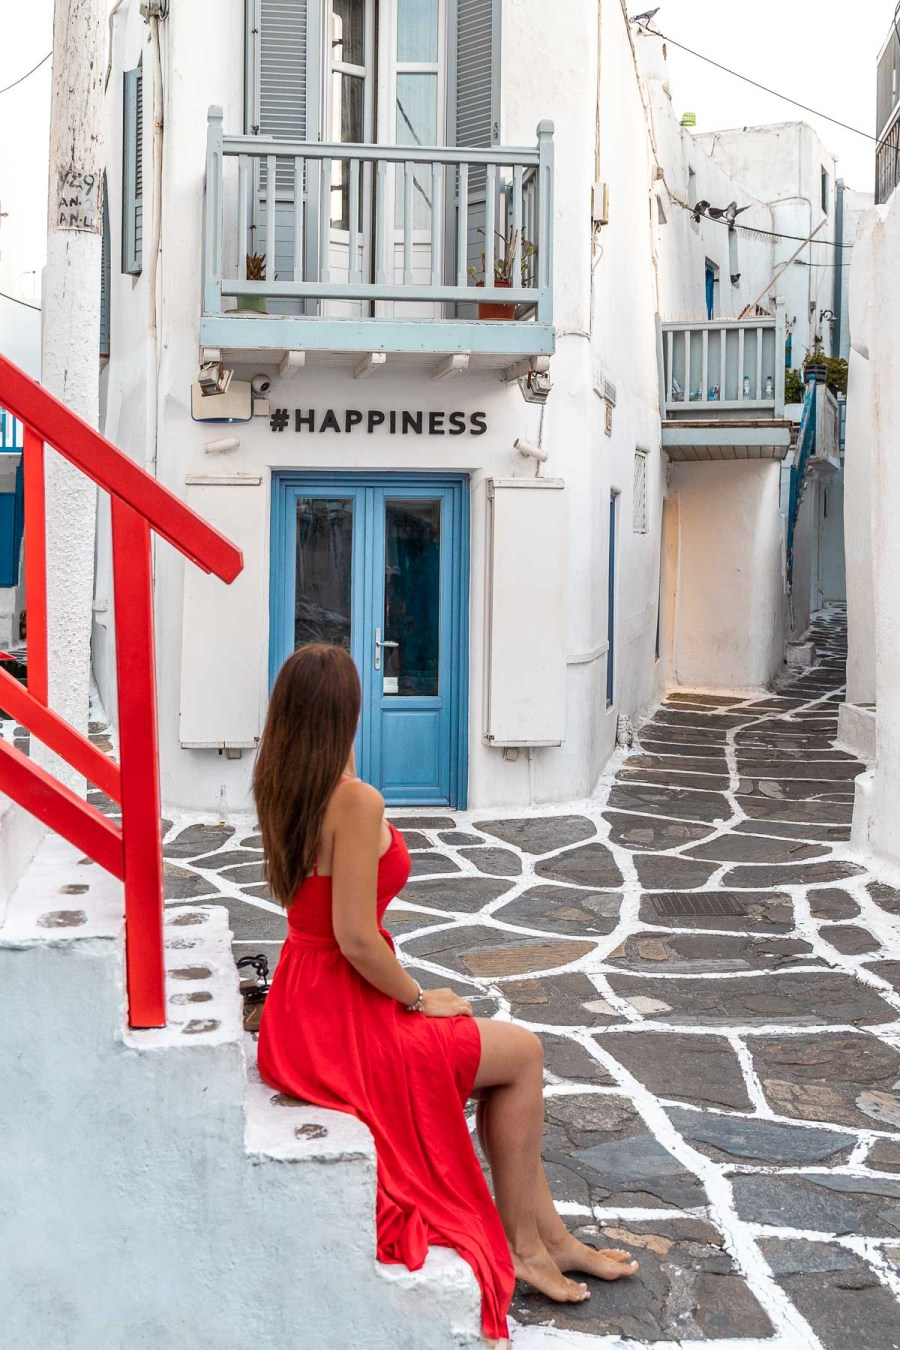 Girl in a red dress sitting on the stairs in front of the #happiness store which is one of the most instagrammable places in Mykonos